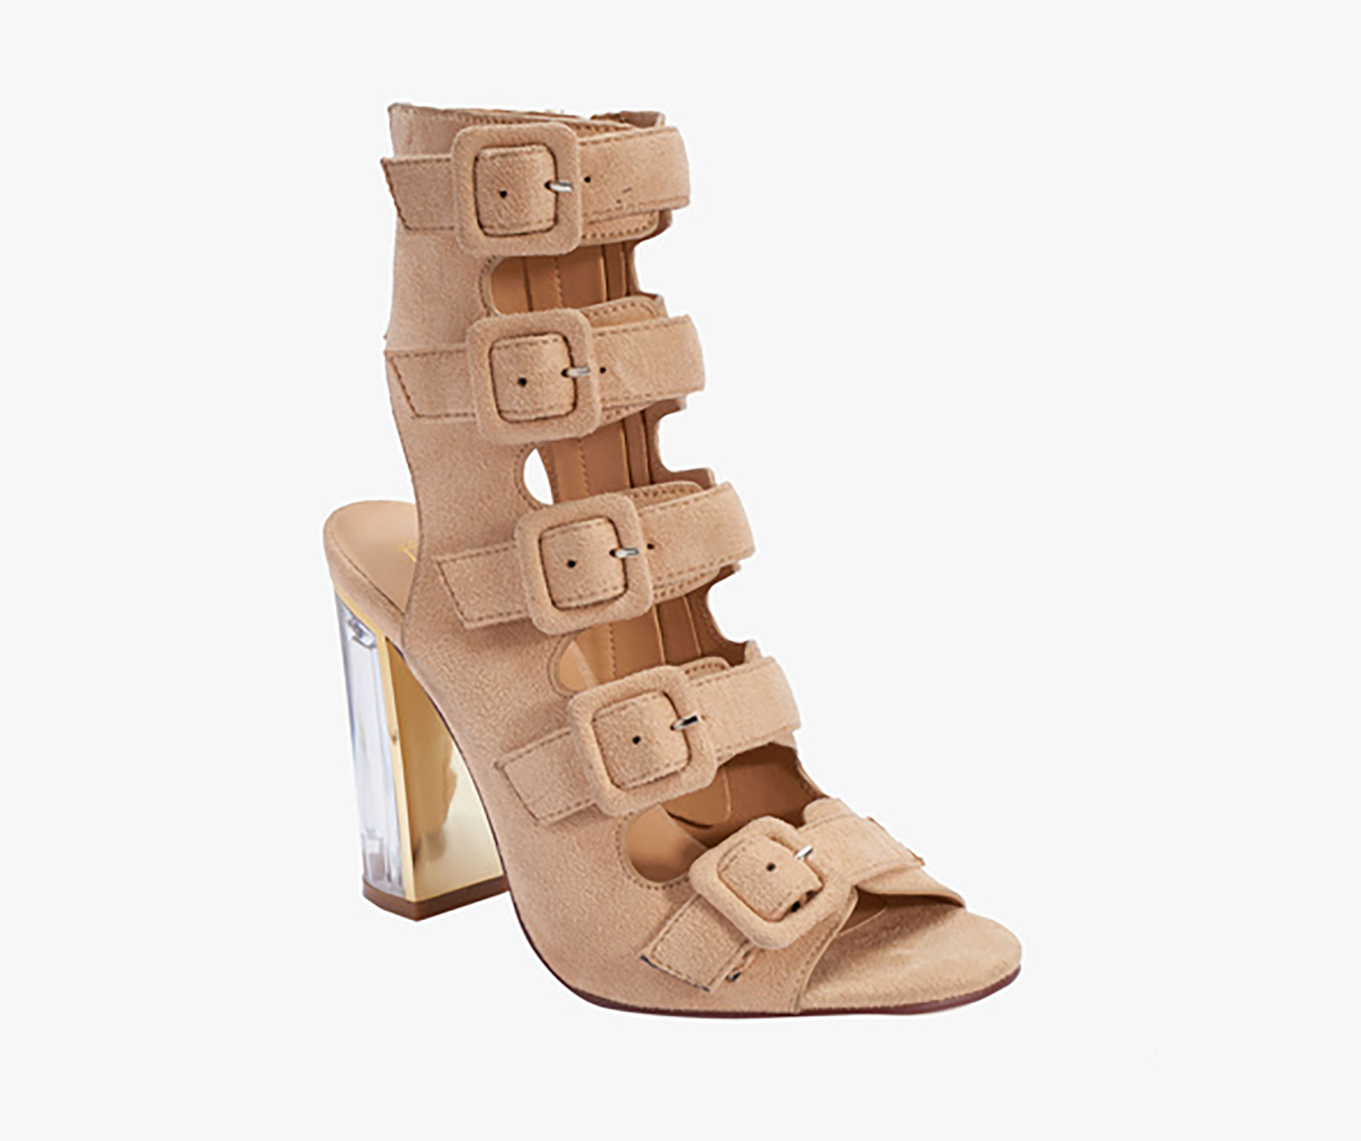 Truffle-Collection-Cream-Sandals-0734-2730932-1-pdp_slider_l